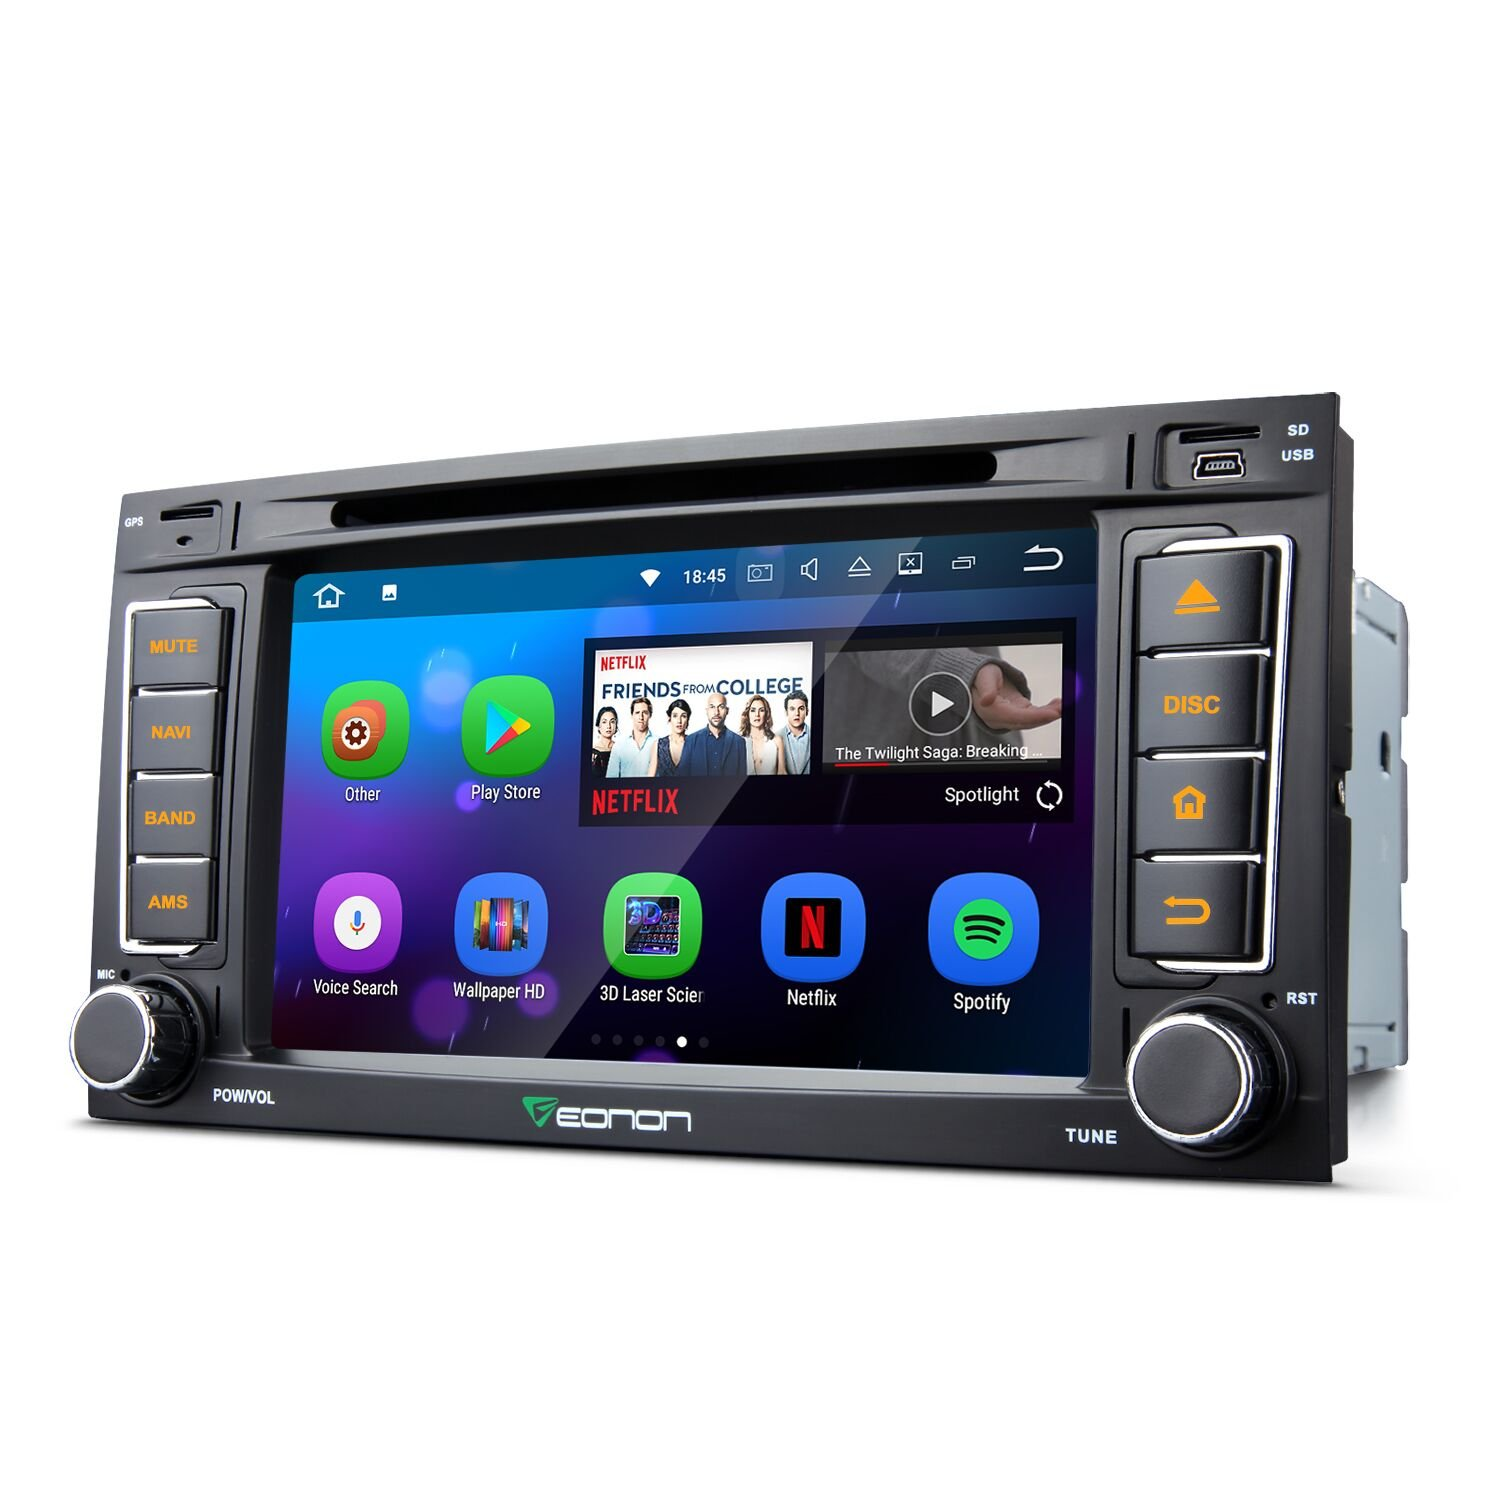 Eonon GA8202 Car Audio Stereo Radio for Volkswagen(VW) Touareg/T5 Multivan/Transporter 7'' Android 7.1 Car GPS Navigation In Dash Touchscreen Support Fastboot Wifi MirrorLink AUX USB SD Backup Camera